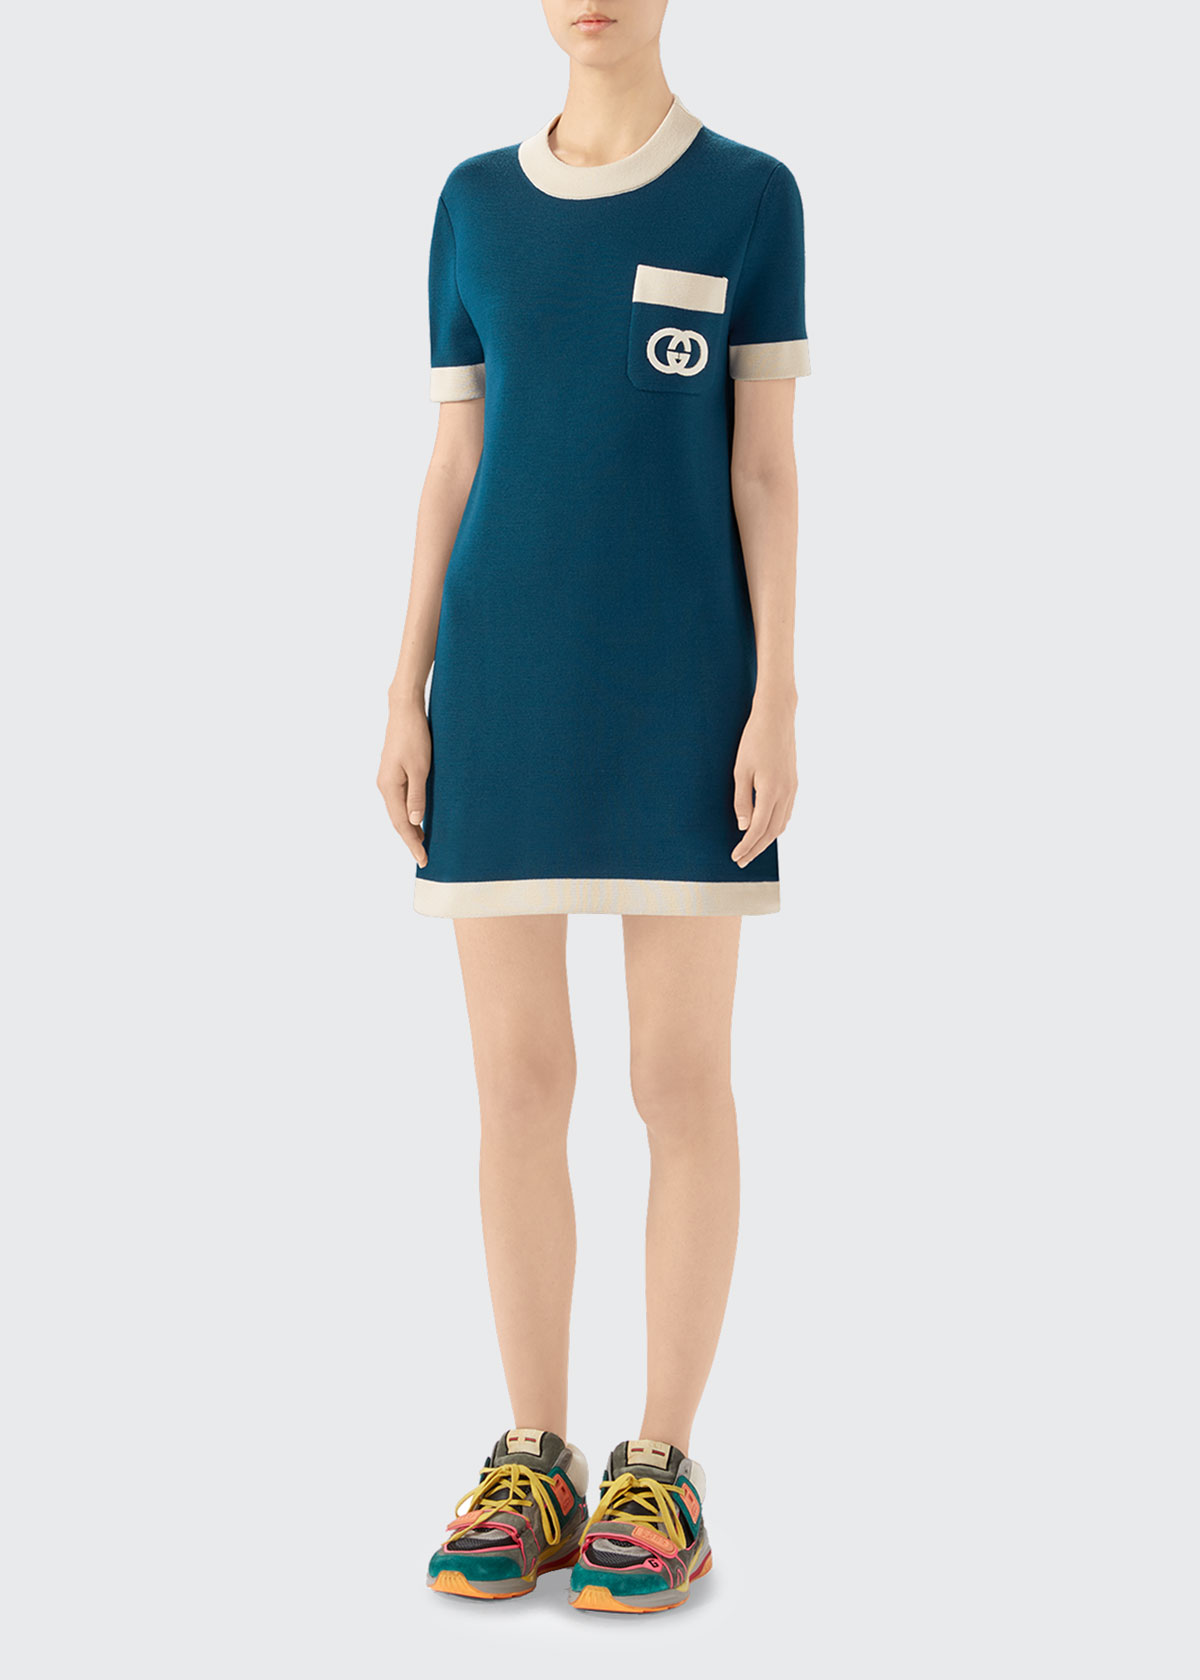 Gucci Dresses FINE WOOL SHORT-SLEEVE DRESS